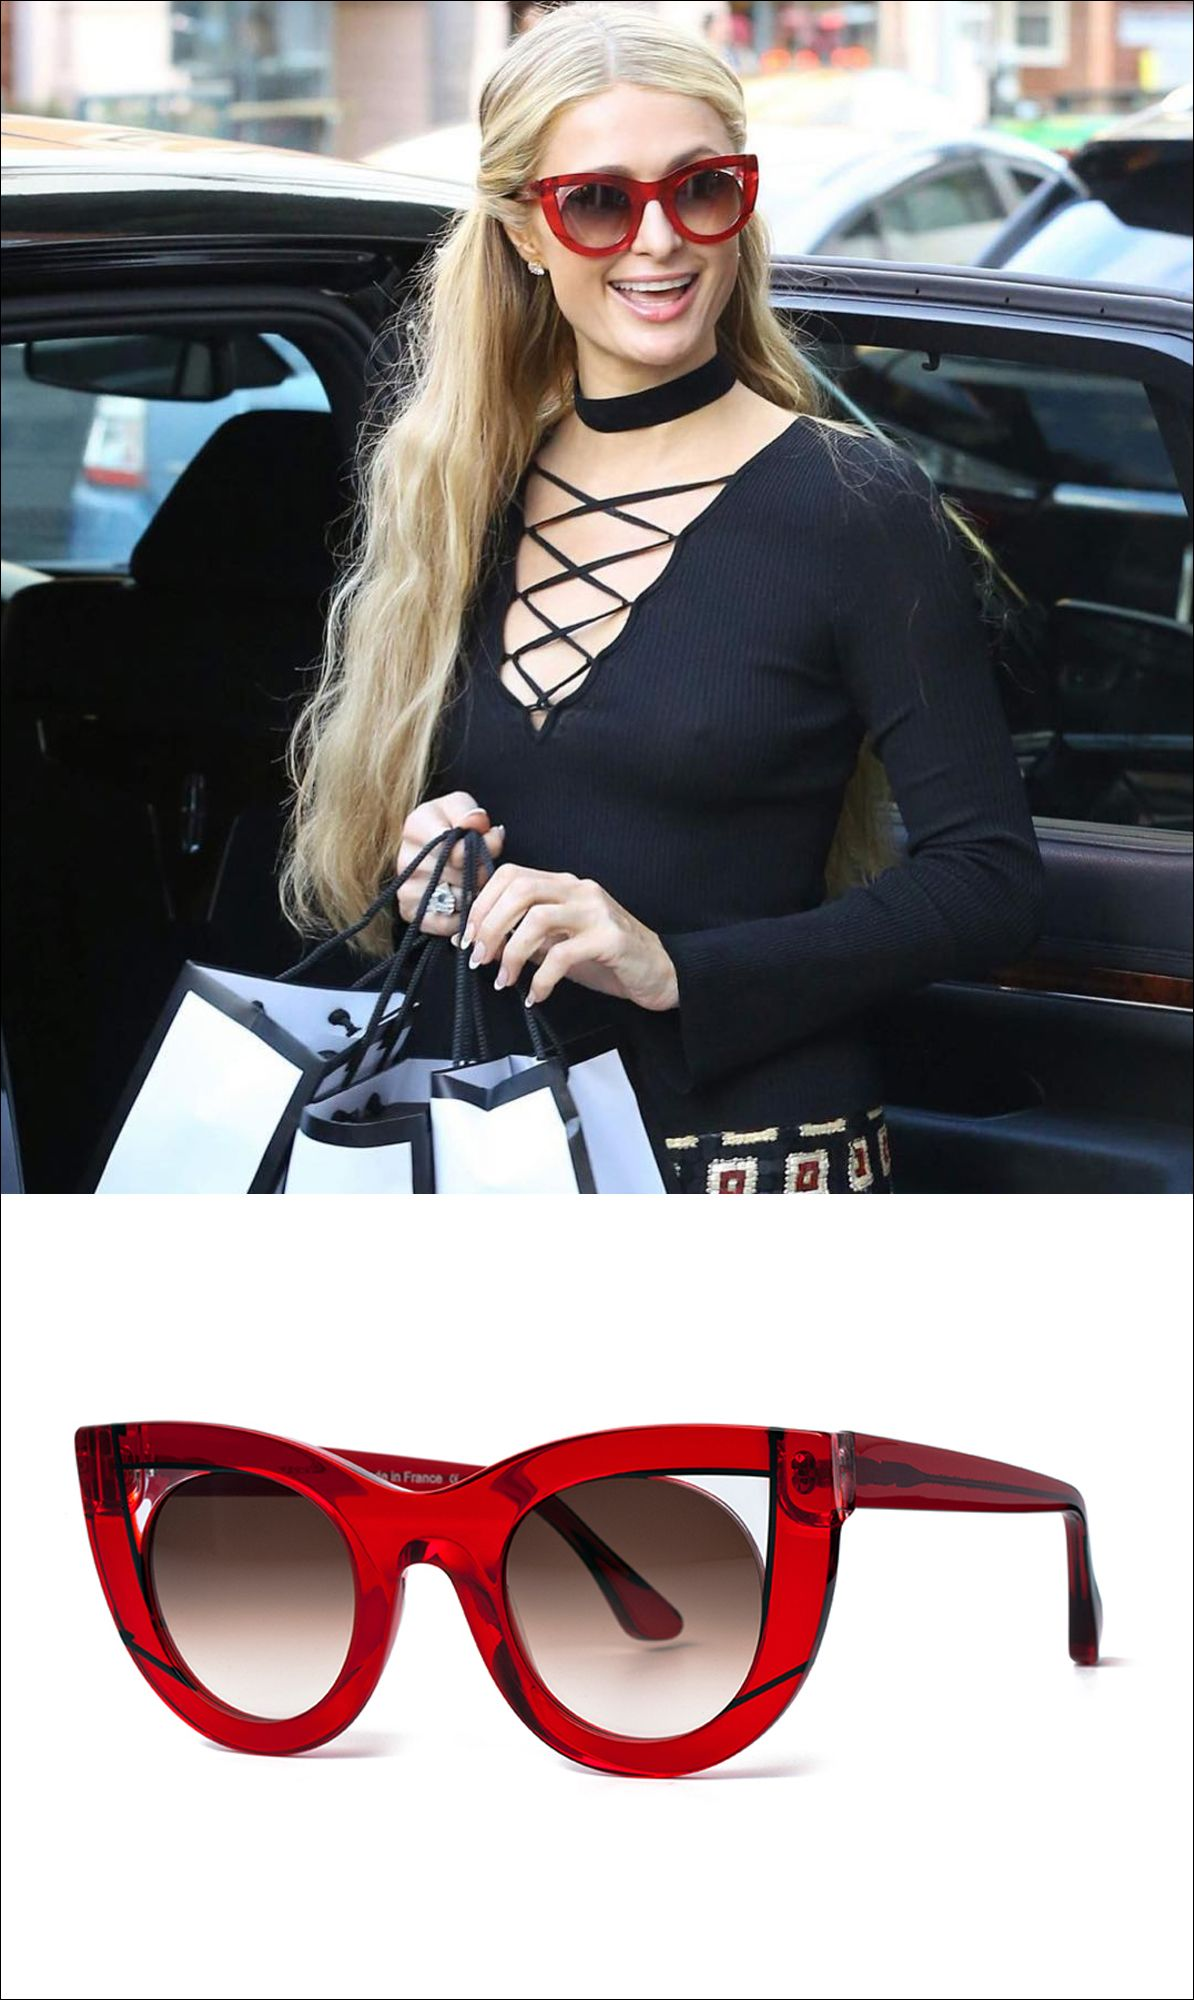 e0bd7c310f The Thierry Lasry Wavvvy offers a a bold soft cat eye shape for women and  is available in 3 colors. Paris Hilton ...